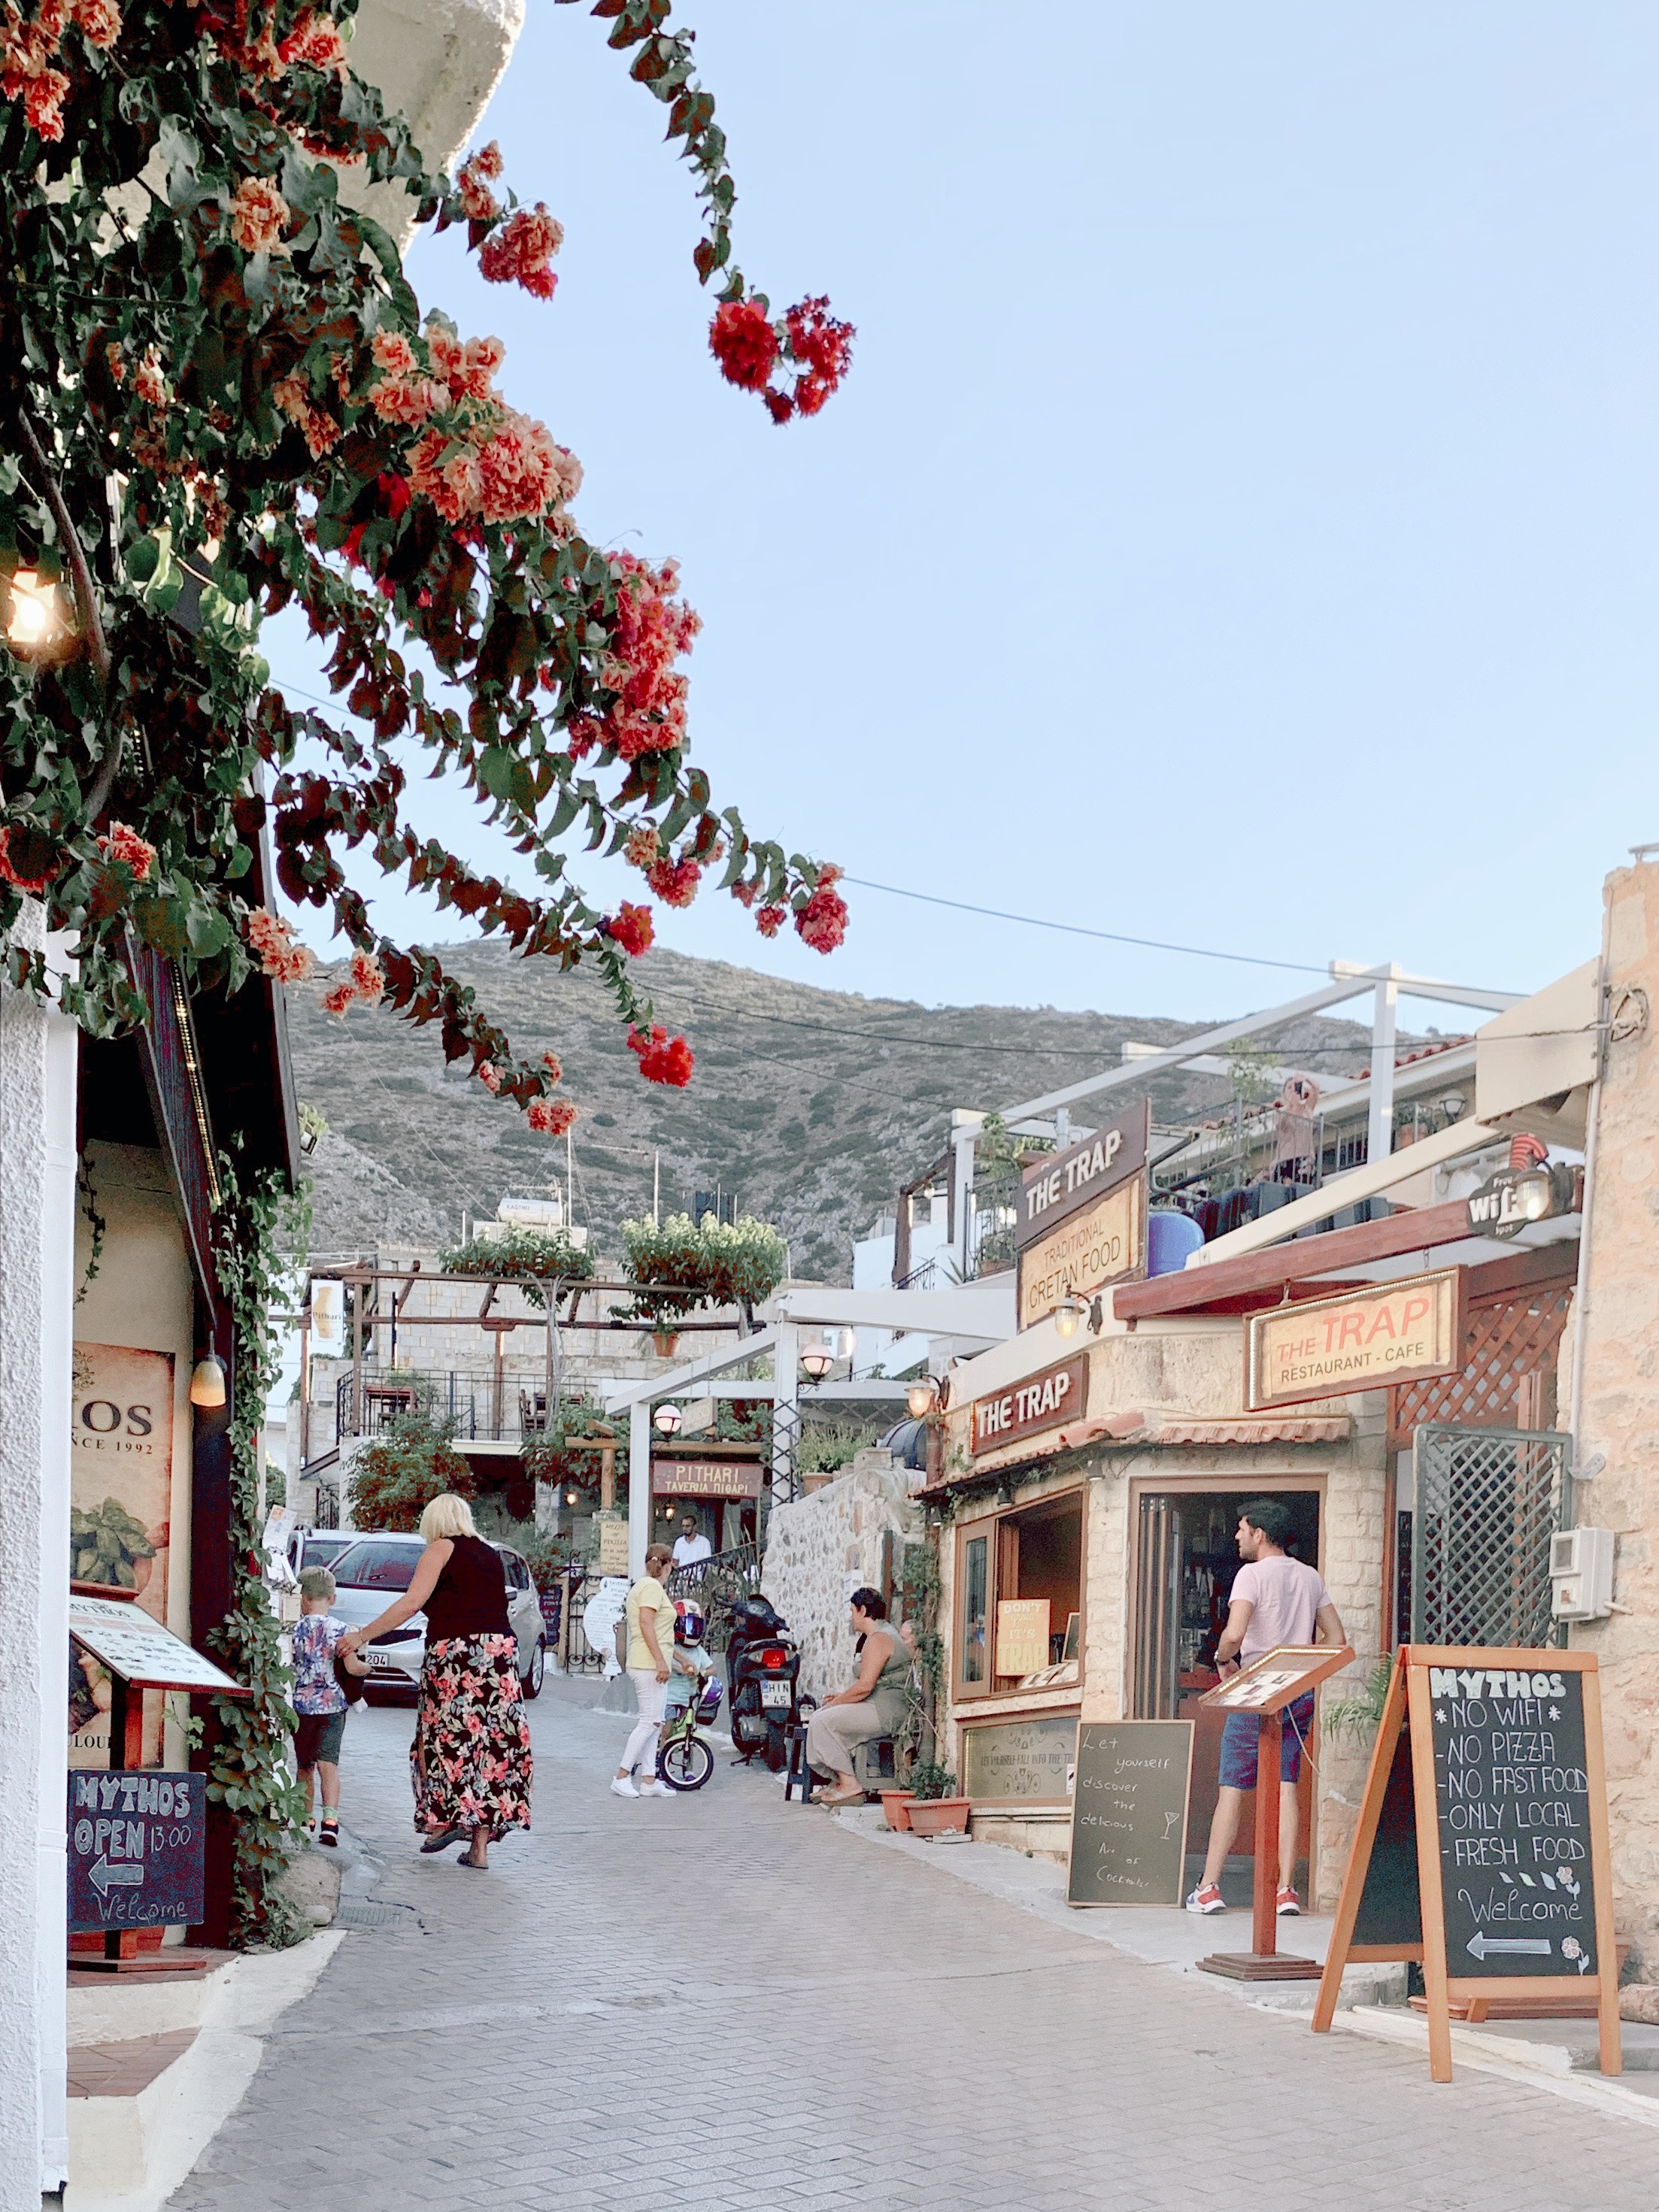 acs 0128 - Crete, Greece